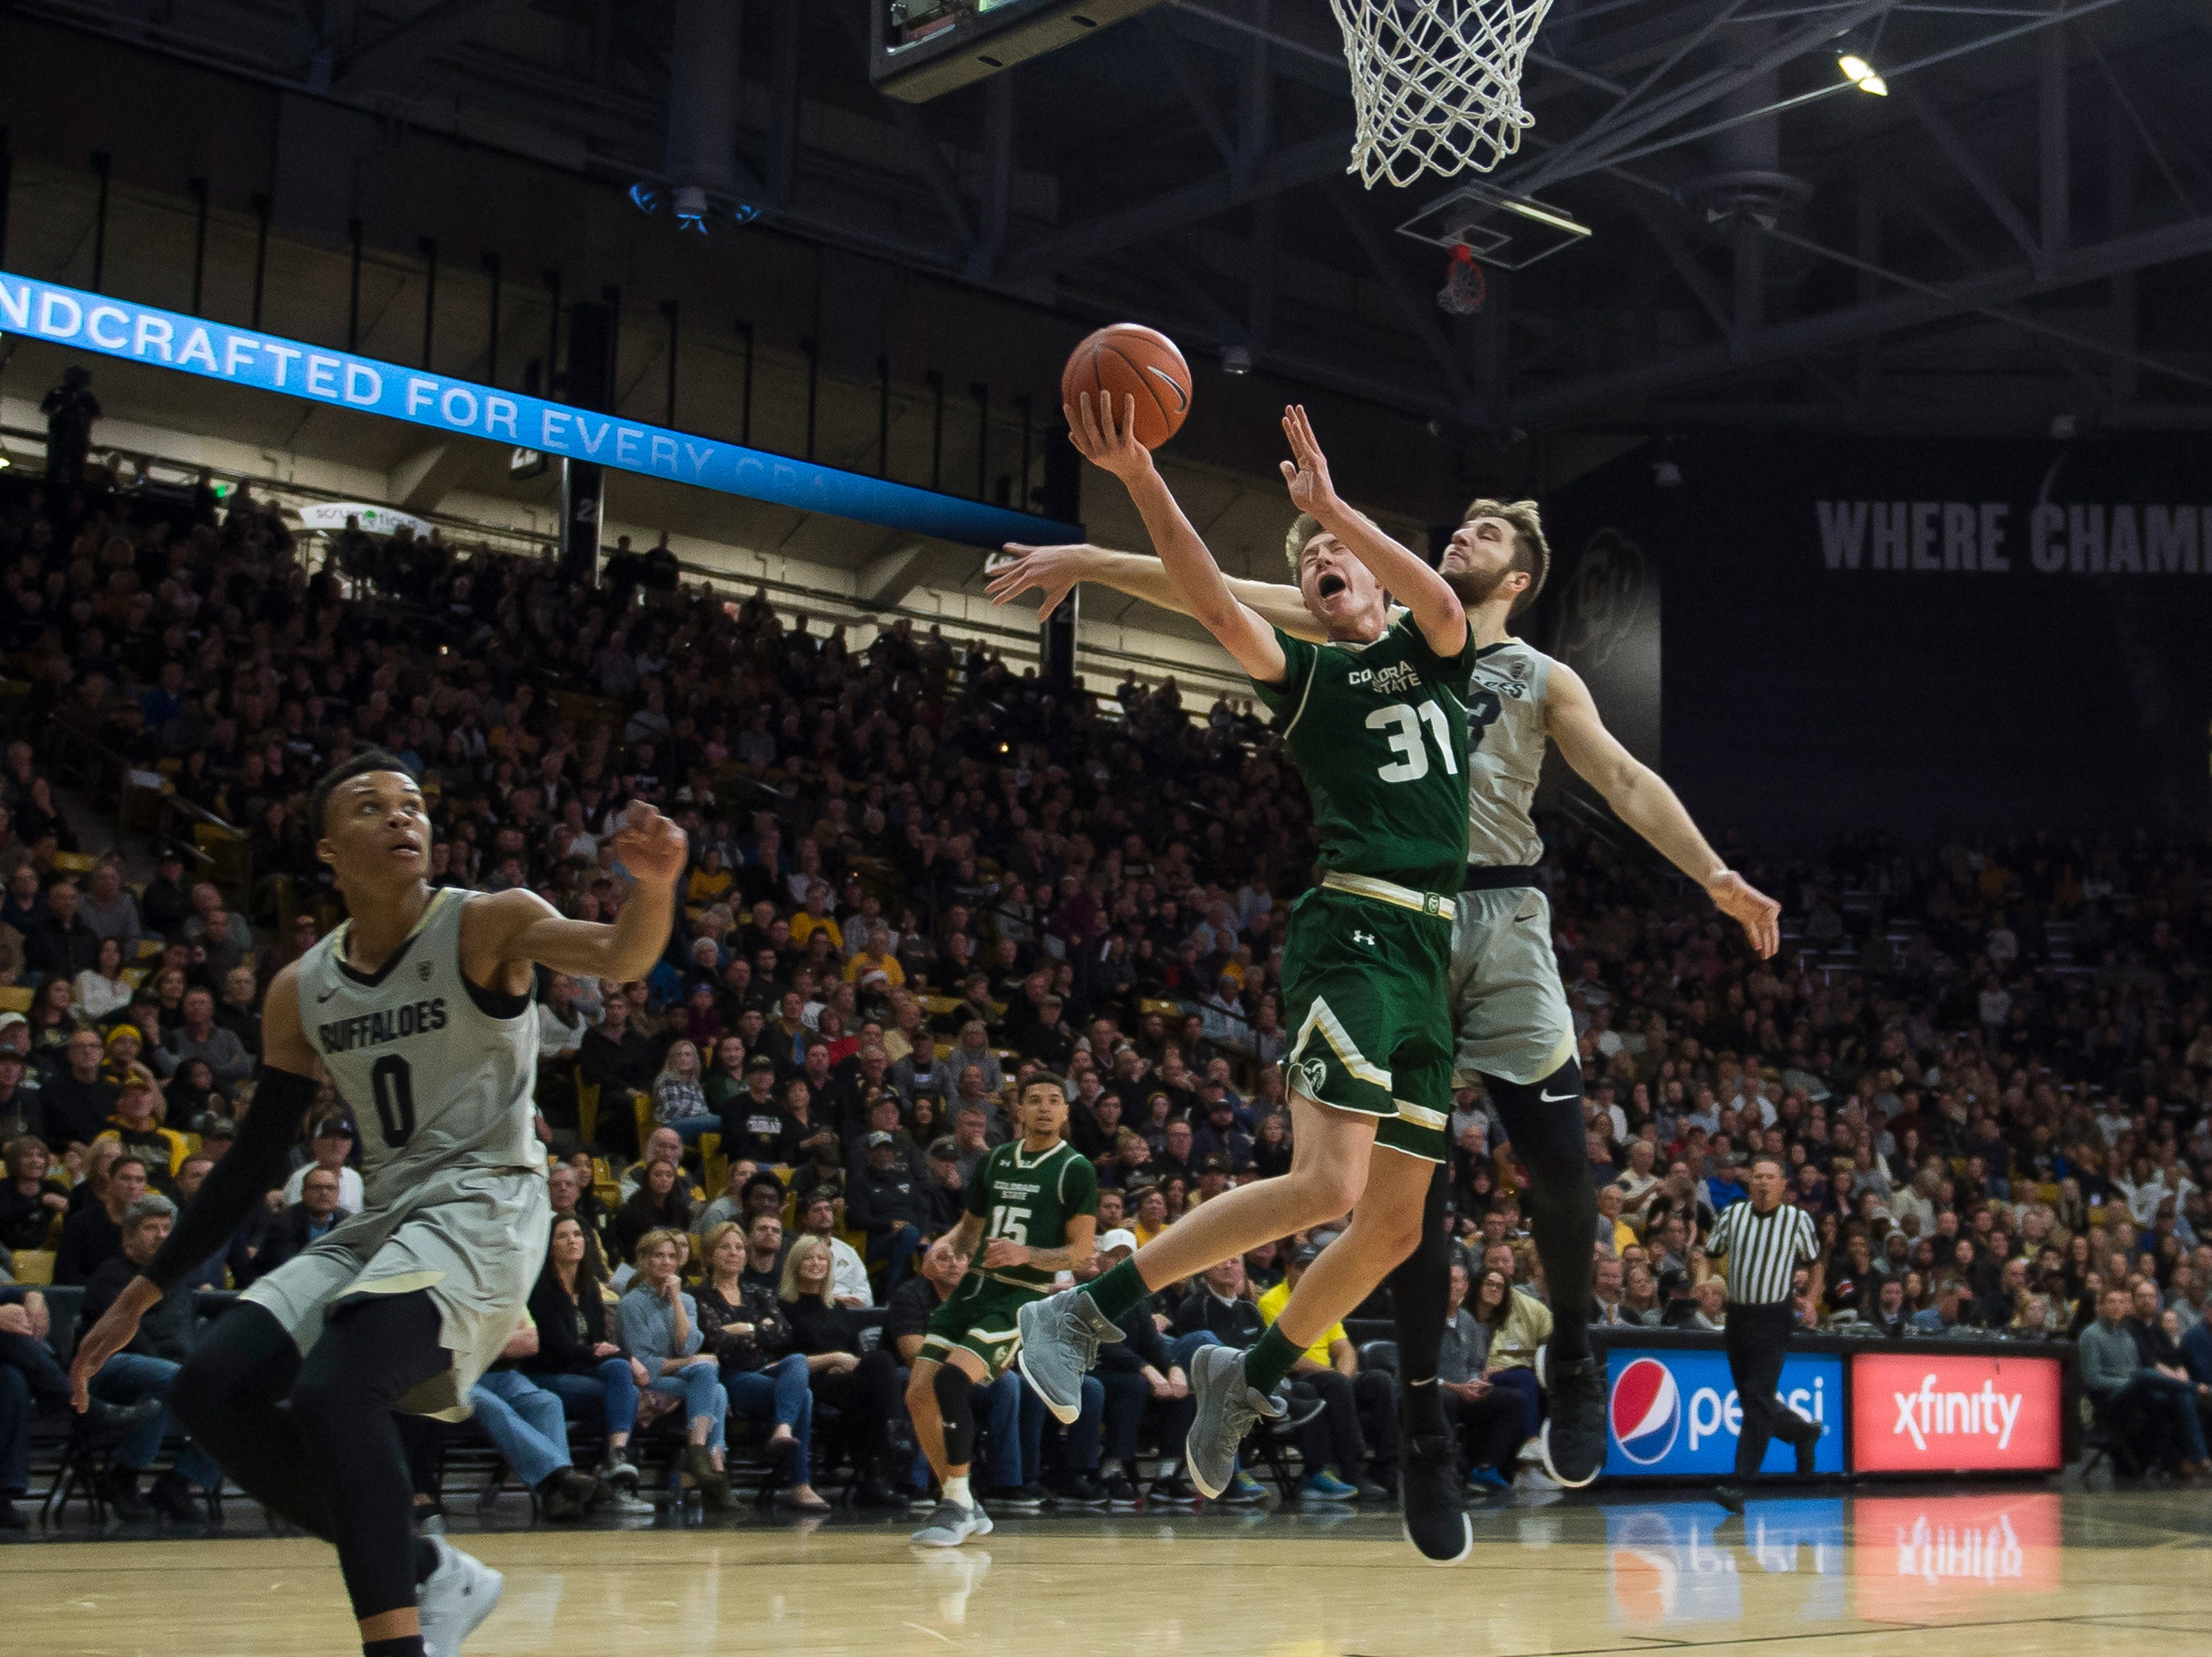 Colorado State University freshman forward Adam Thistlewood (31) gets a layup past University of Colorado junior forward Lucas Siewert (23) on Saturday, Dec. 1, 2018, at the CU Event Center in Boulder, Colo.